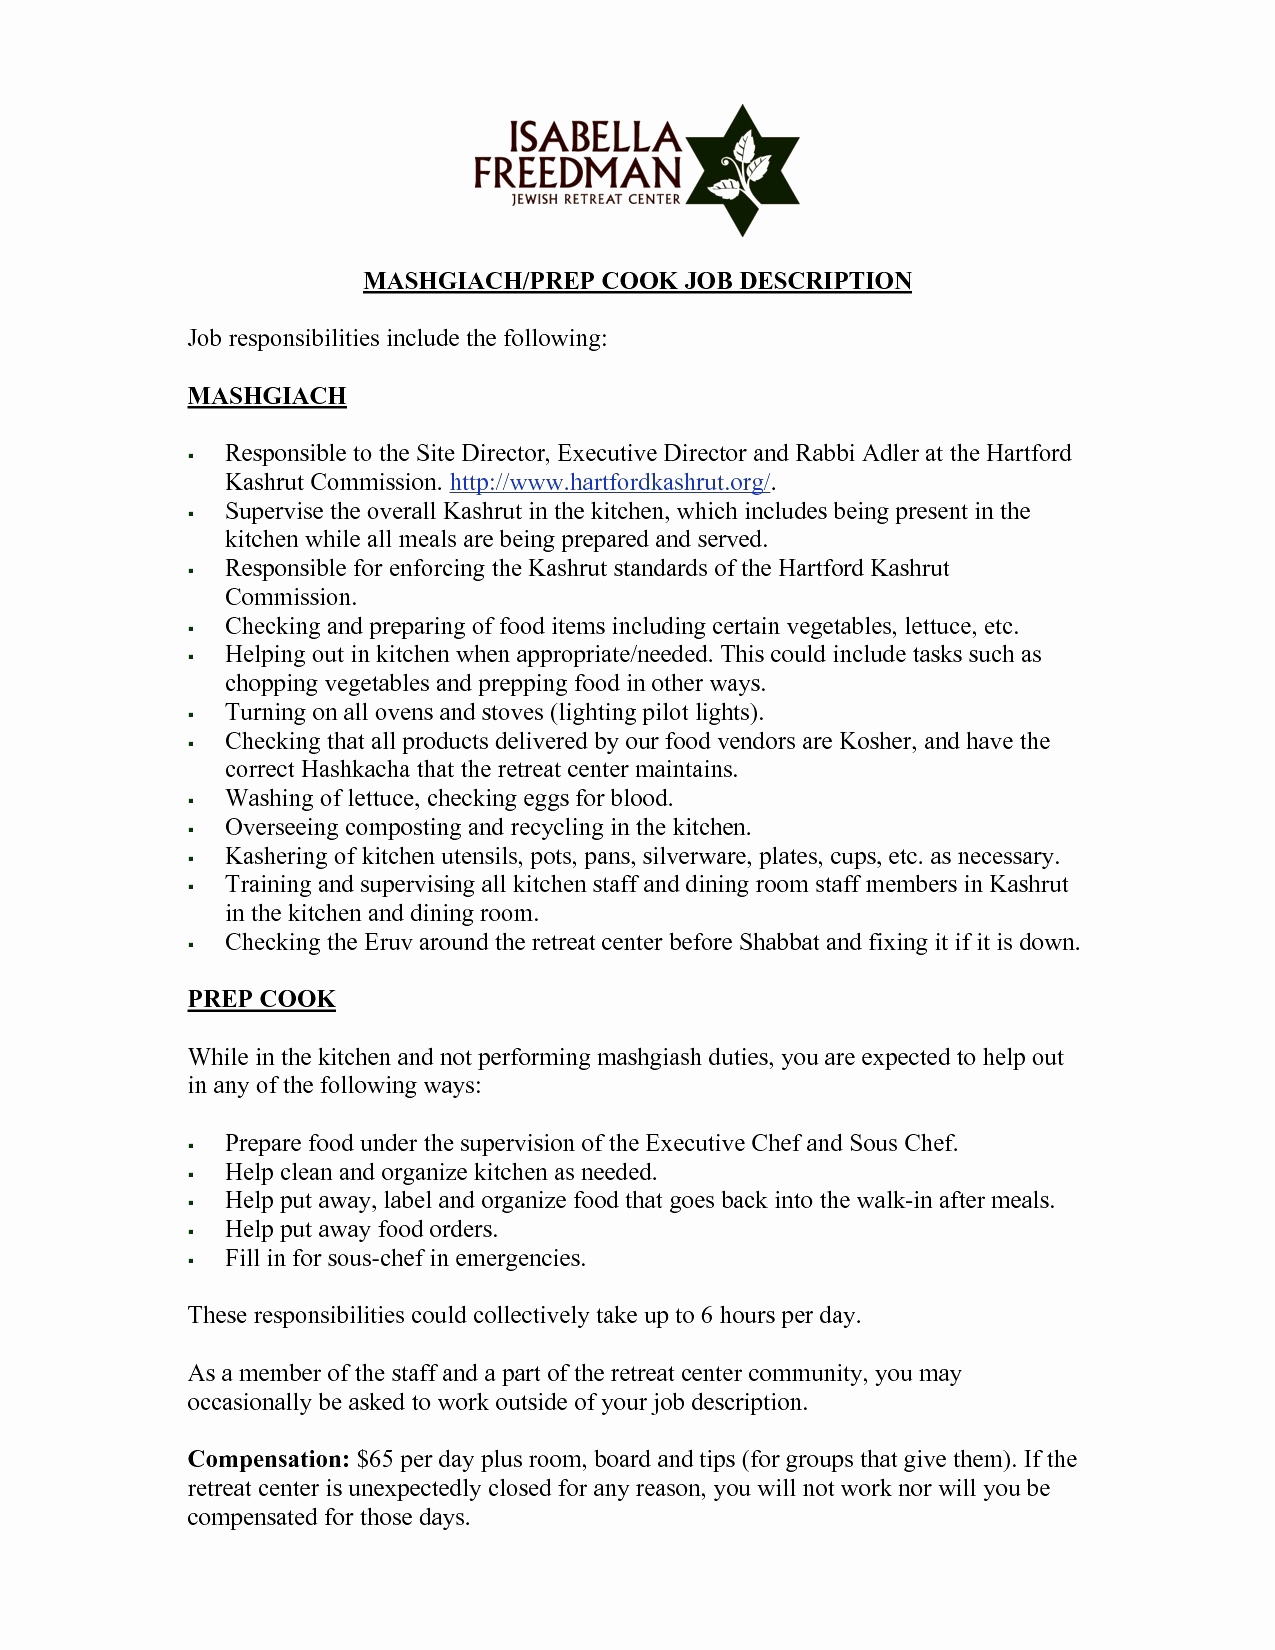 Sample Cover Letter Template - Cover Letter Opening Paragraph Examples New Resume and Cover Letter